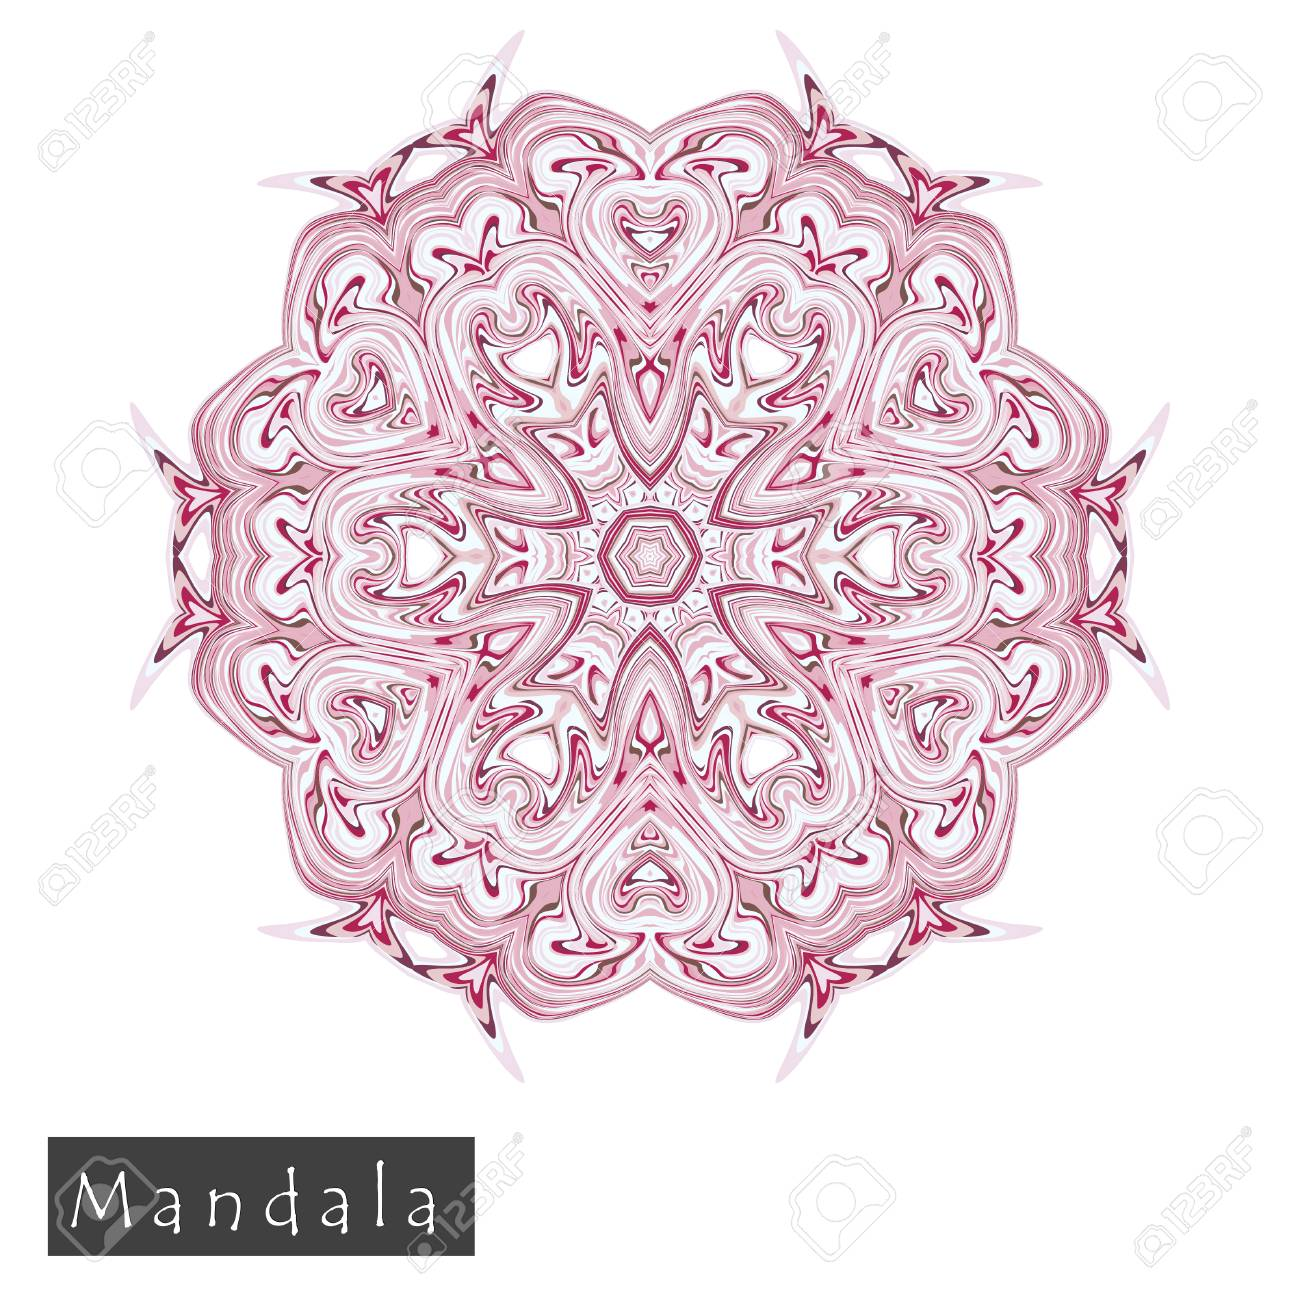 Made Of Thin Lines Detailed Mandala. Floral Symmetrical Geometrical ...